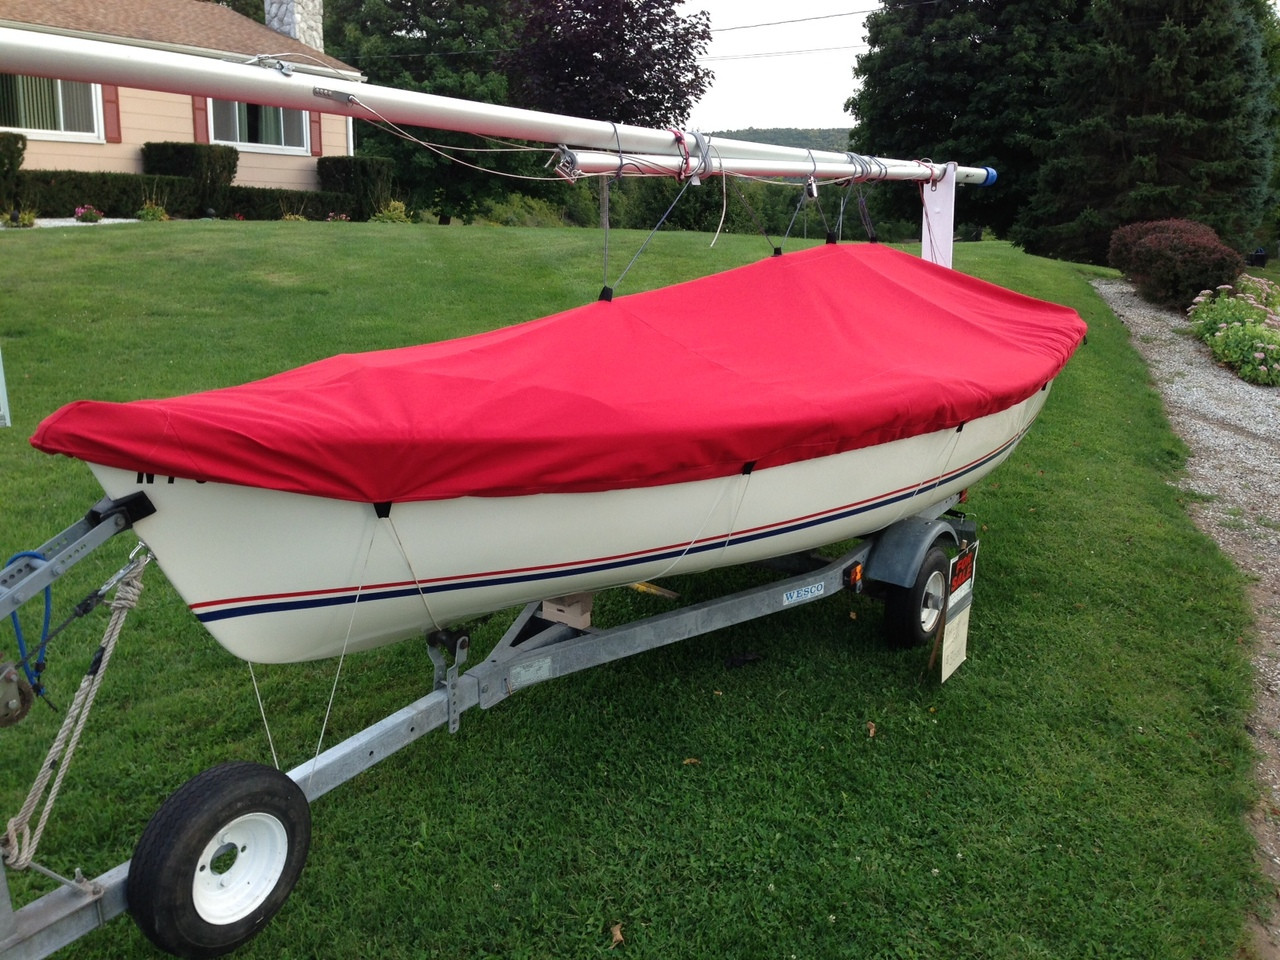 American 14.6 Top Deck Cover by SLO Sail and Canvas. Shown in Sunbrella Jockey Red.